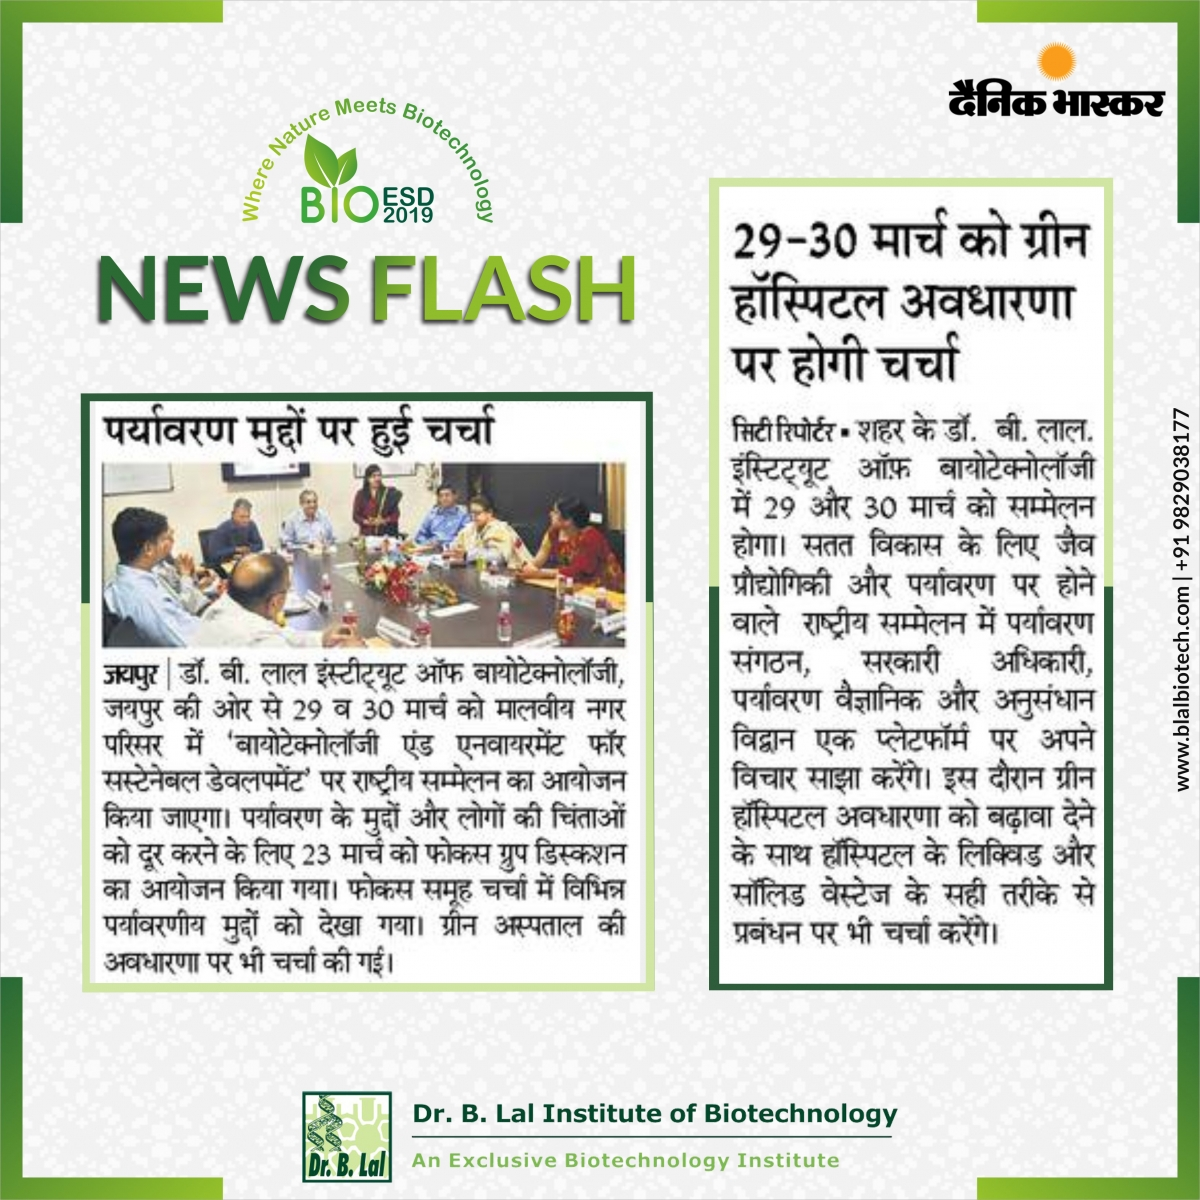 National conference - BioESD2019 | Media Partner Dainik Bhaskar